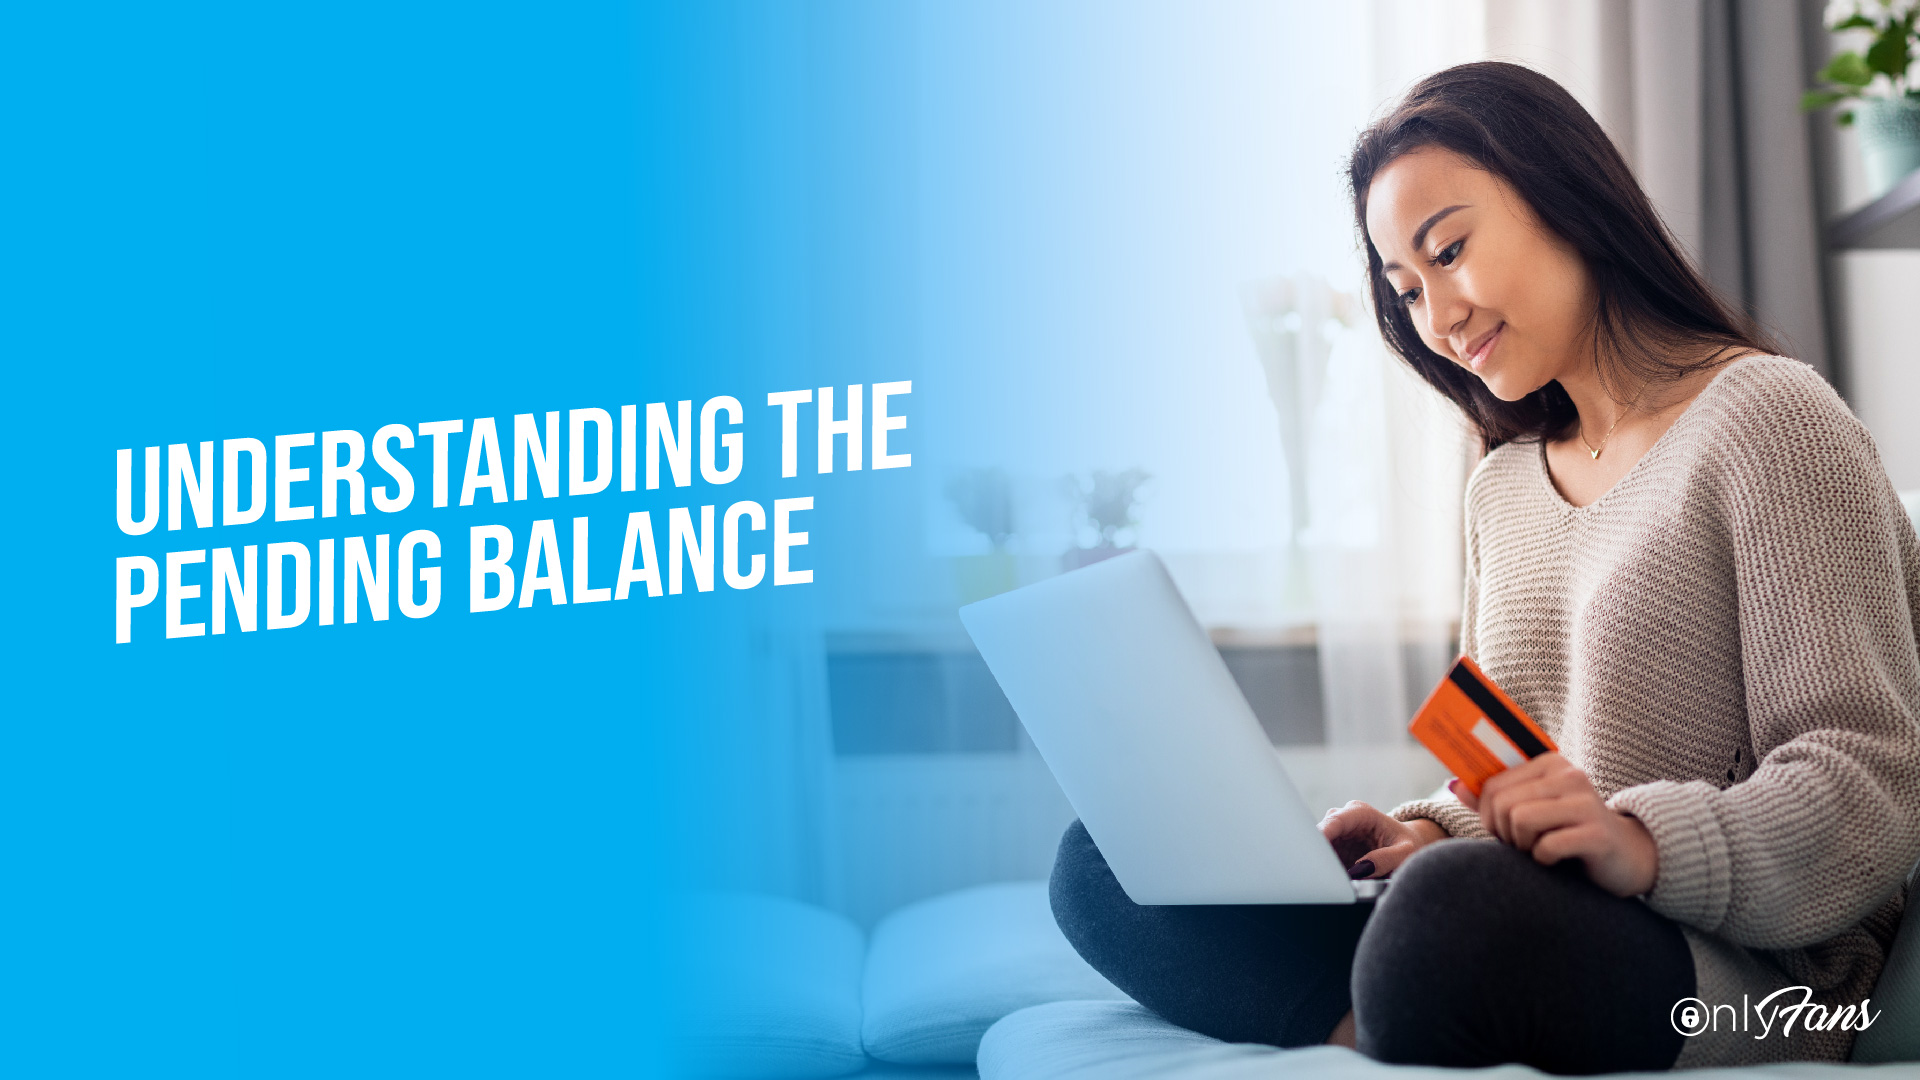 understanding the pending balance on OnlyFans